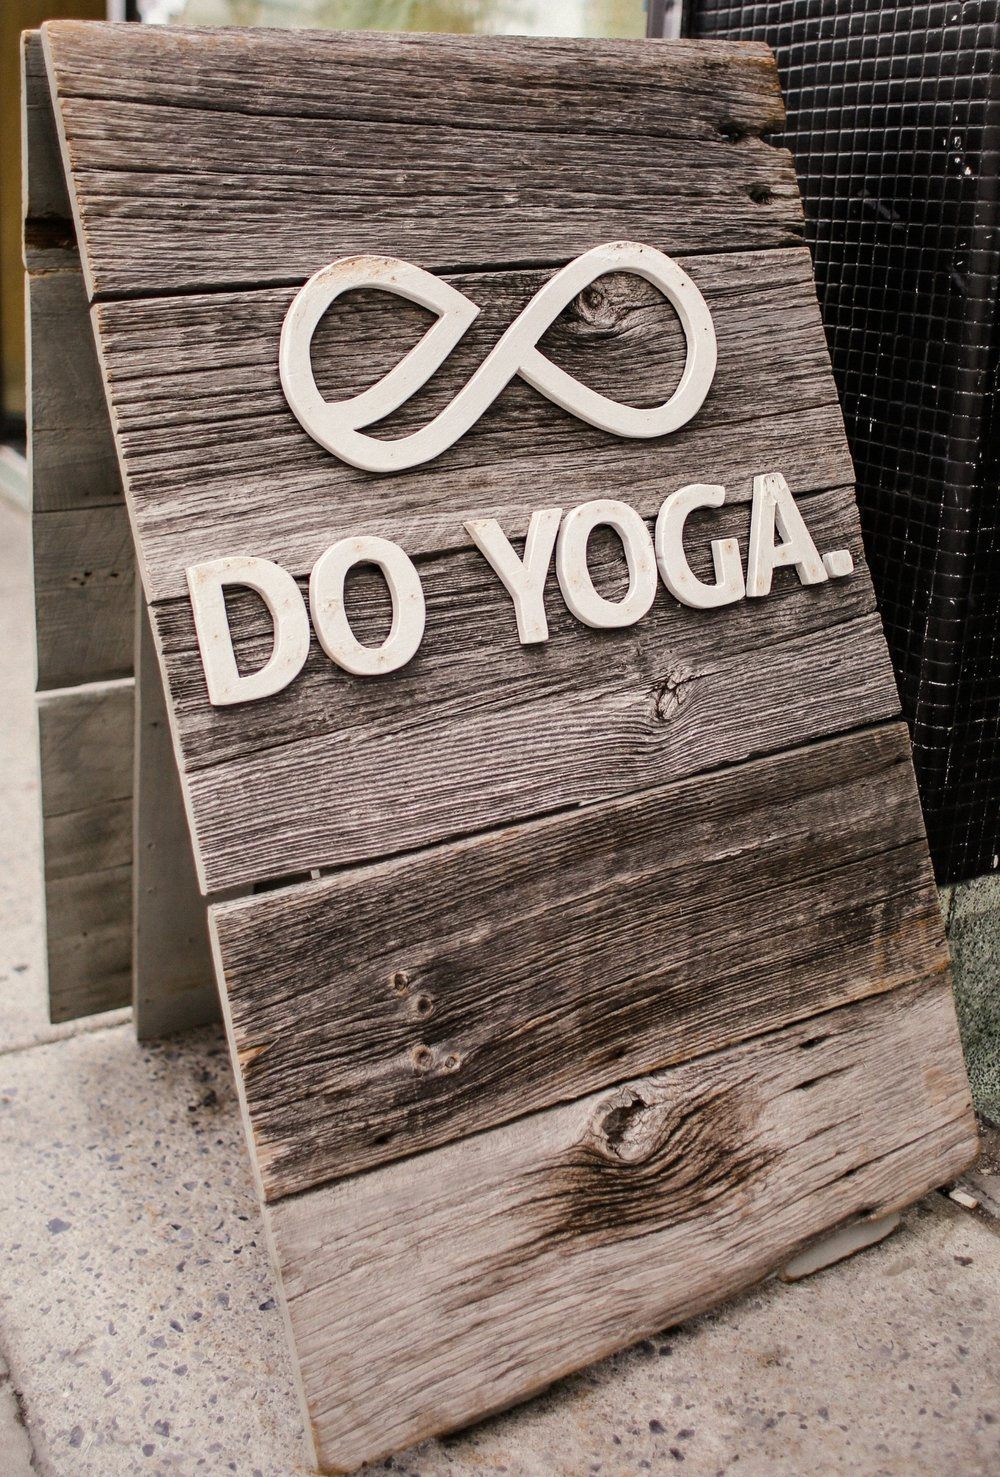 Breathe… - Looking to find a little balance or need to fit in a quick workout? Elgin has you covered from yoga, barre, spin and a gym. Not to mention it's just a few blocks away from the UNESCO Heritage site Rideau Canal.